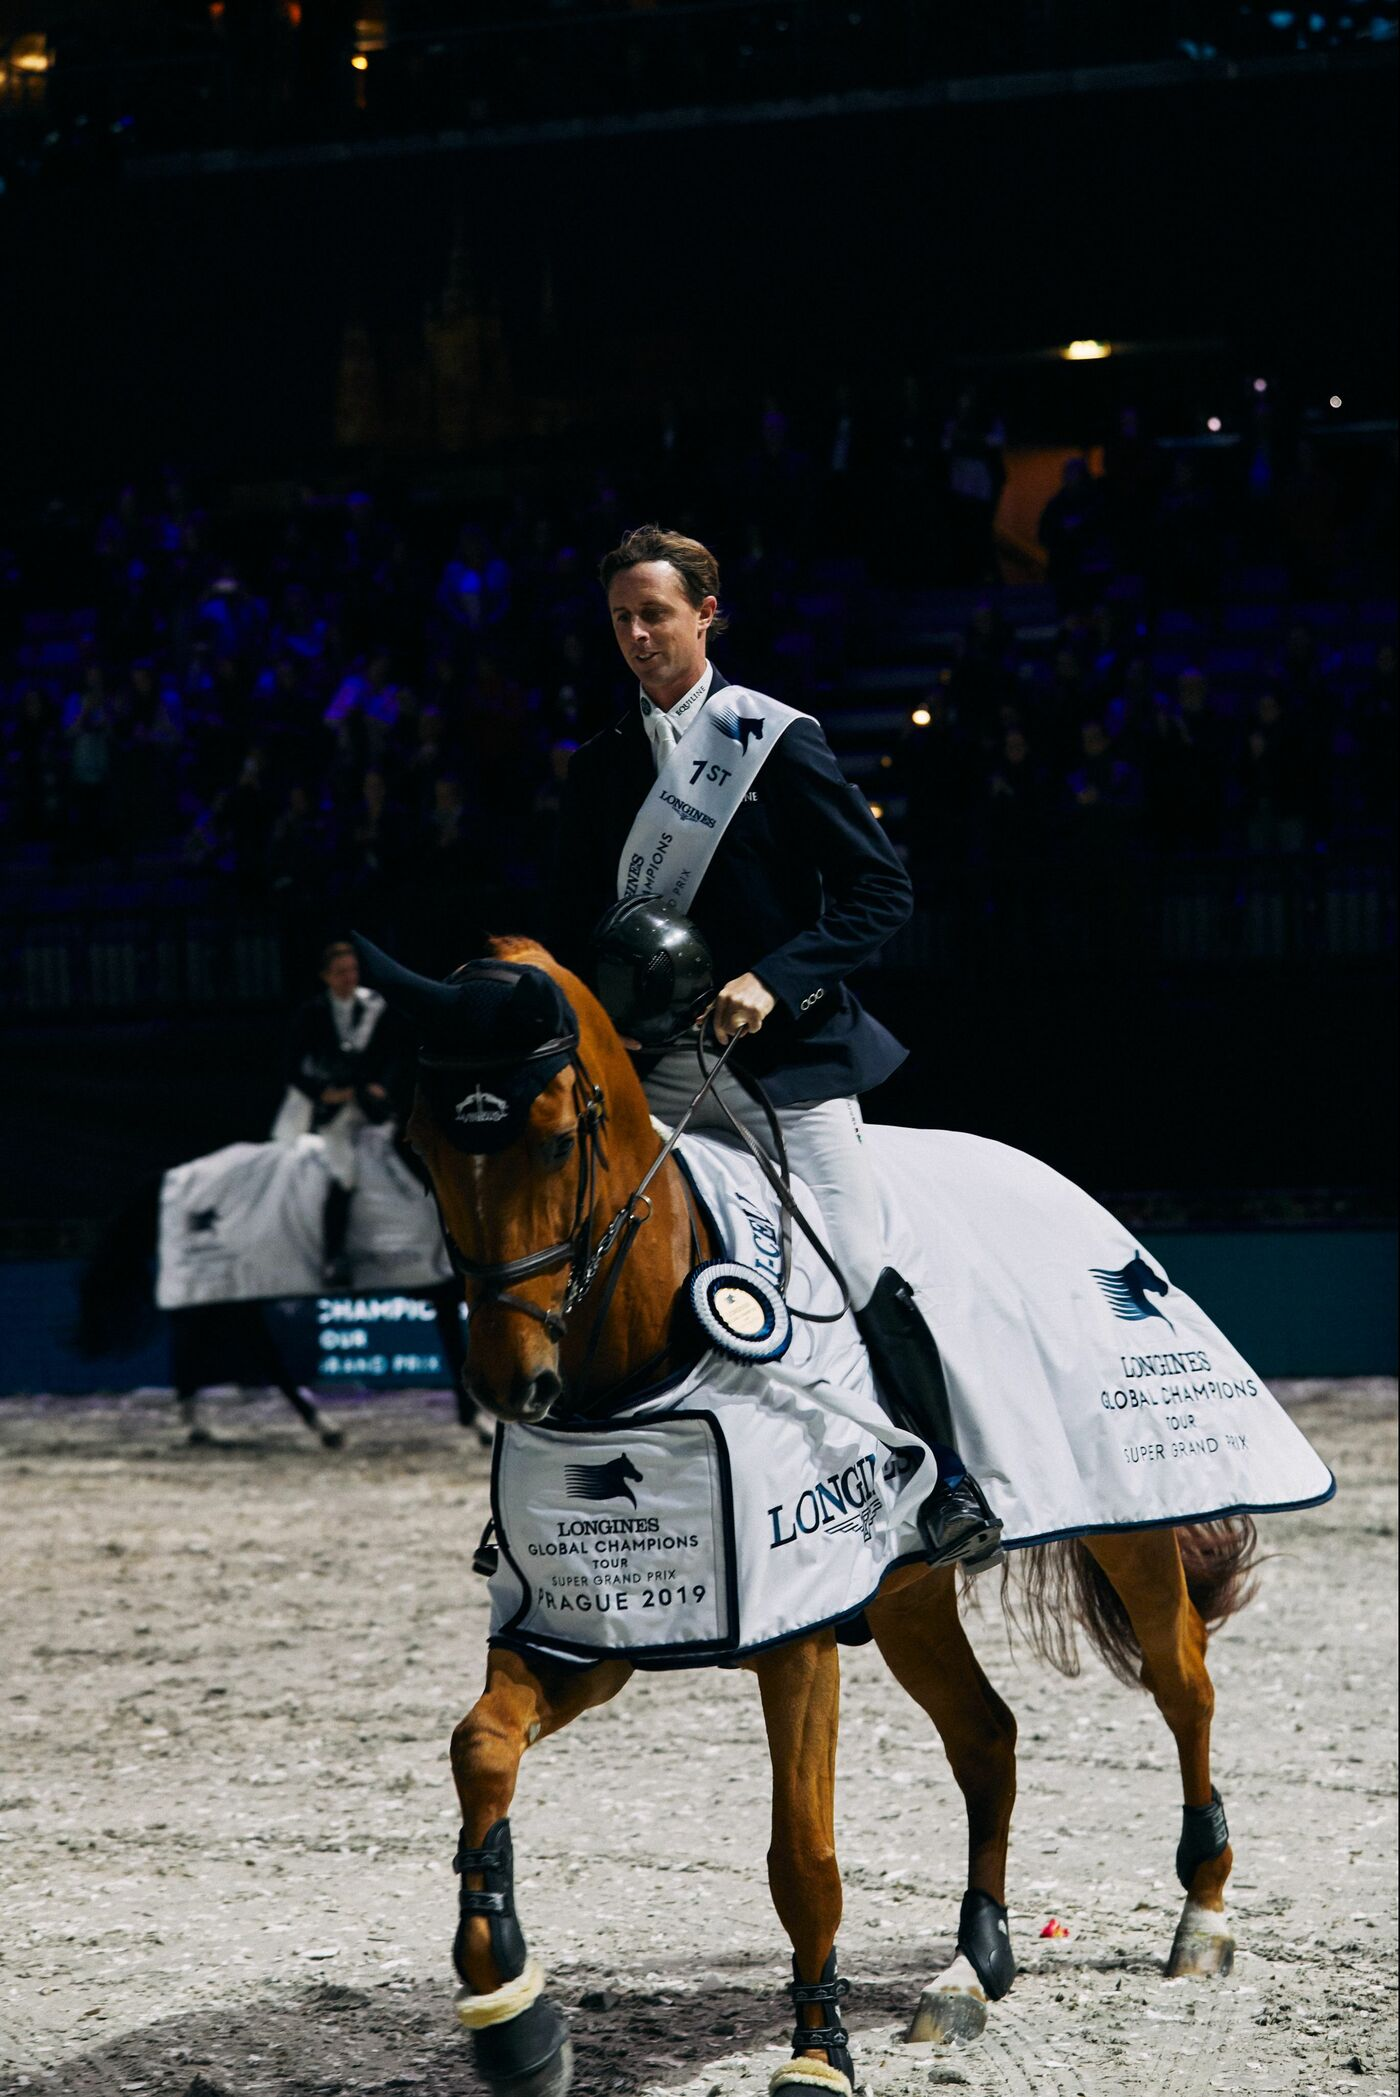 Longines Show Jumping Event: Mind-blowing victory of Ben Maher who becomes the champion of the Longines Global Champions Tour Super Grand Prix 6